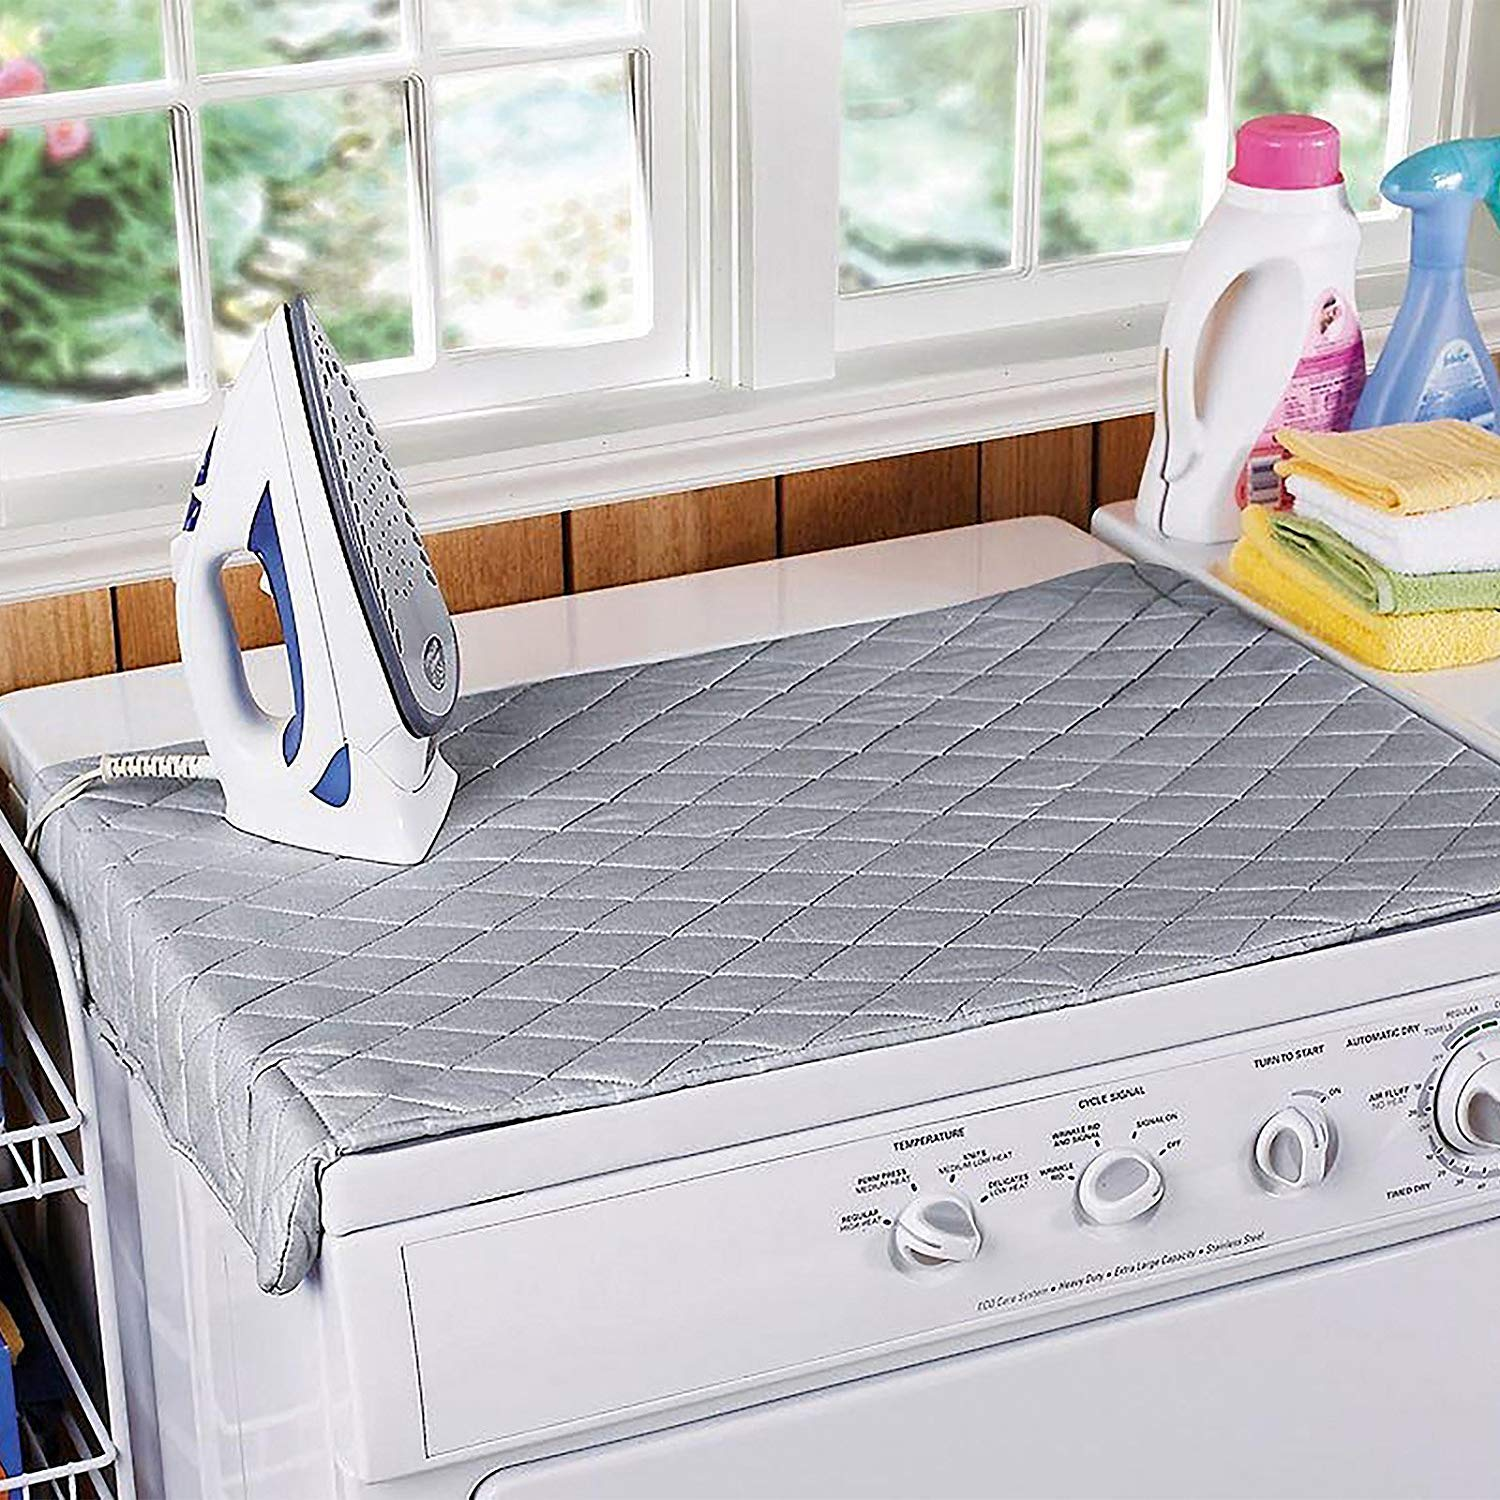 Padded Iron Boards Covers Blue- Umbrella QCWN Ironing Board Cover Thick Cotton Scorch Resistant Iron Covers Protector with Heavy Duty Heat Reflective Pad